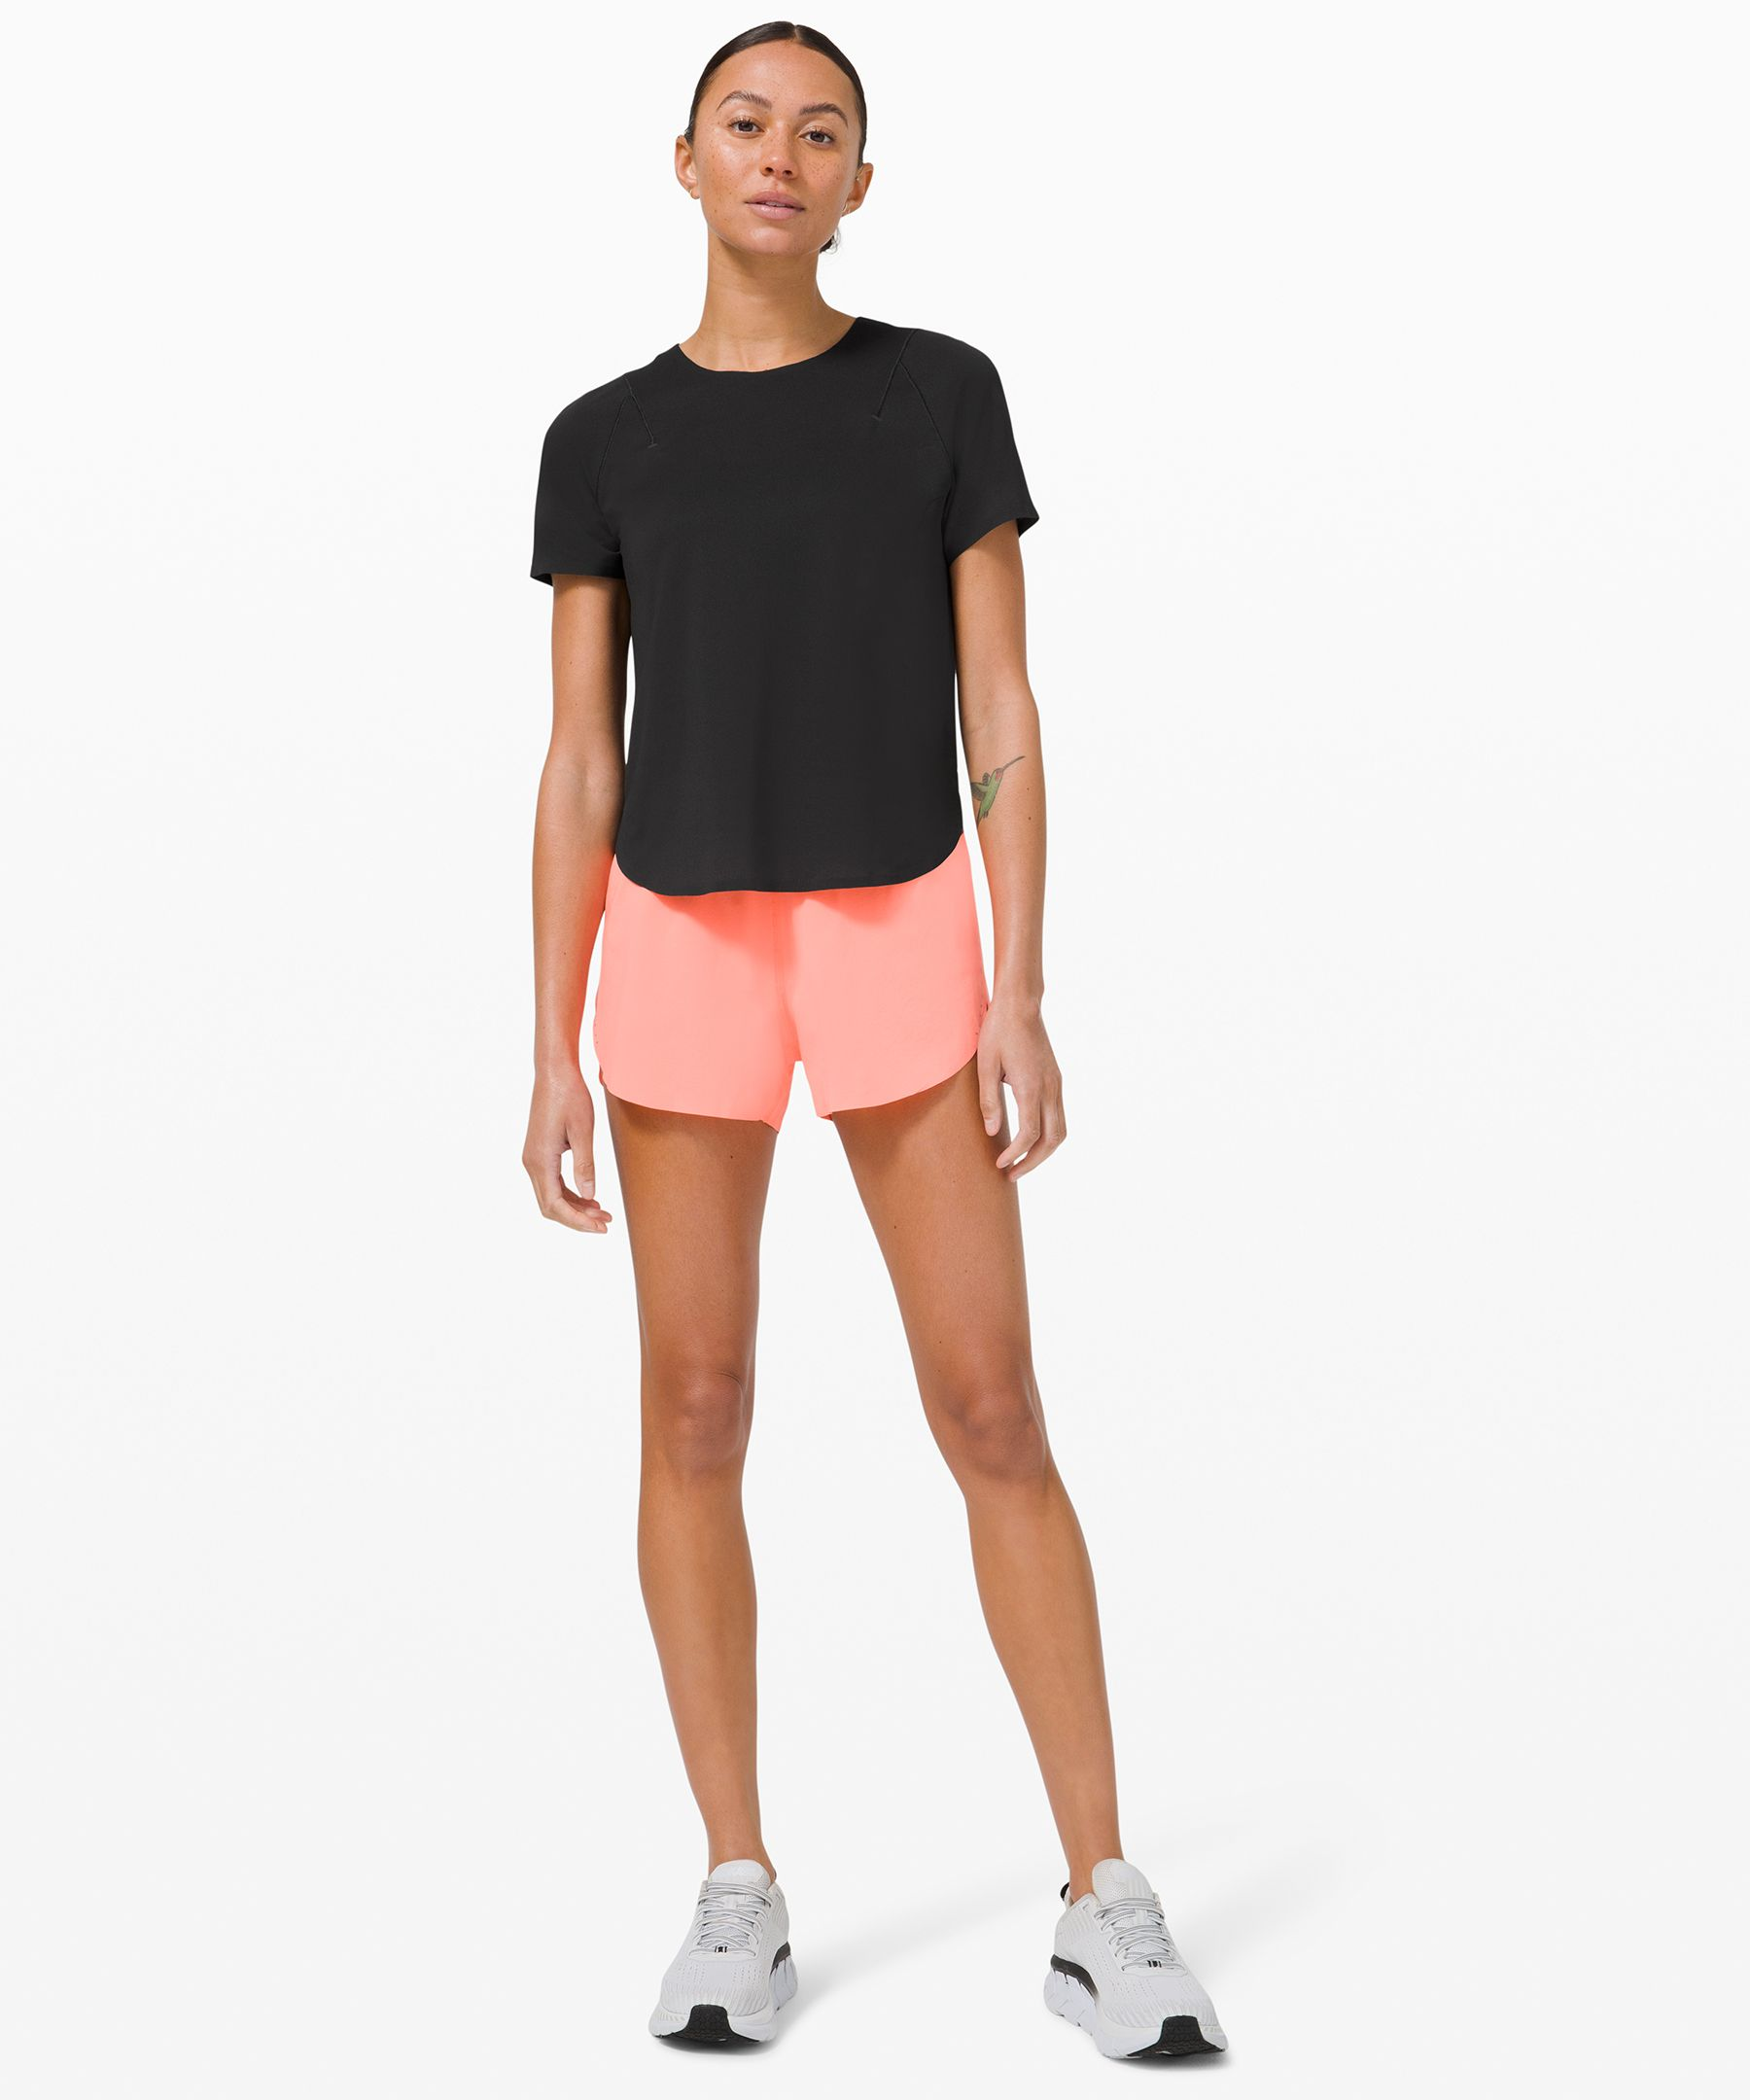 Lightweight Run Kit Short Sleeve